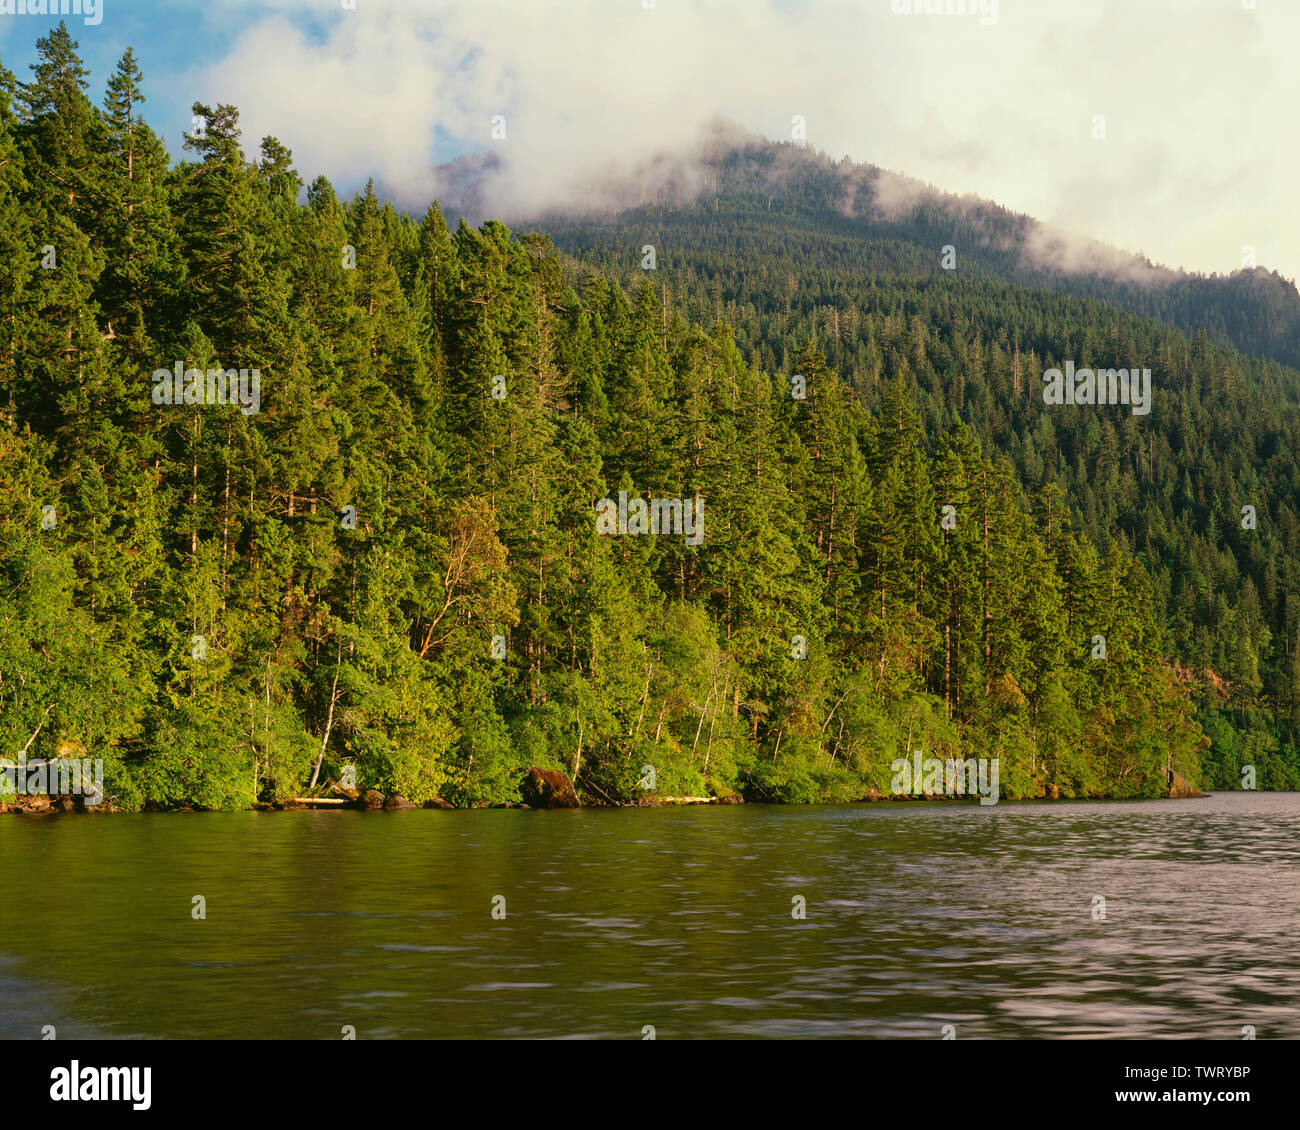 USA, Washington, Olympic National Park, Evening light highlights conifers above Lake Crescent while Mt. Storm King (top right) is shrouded by clouds. - Stock Image